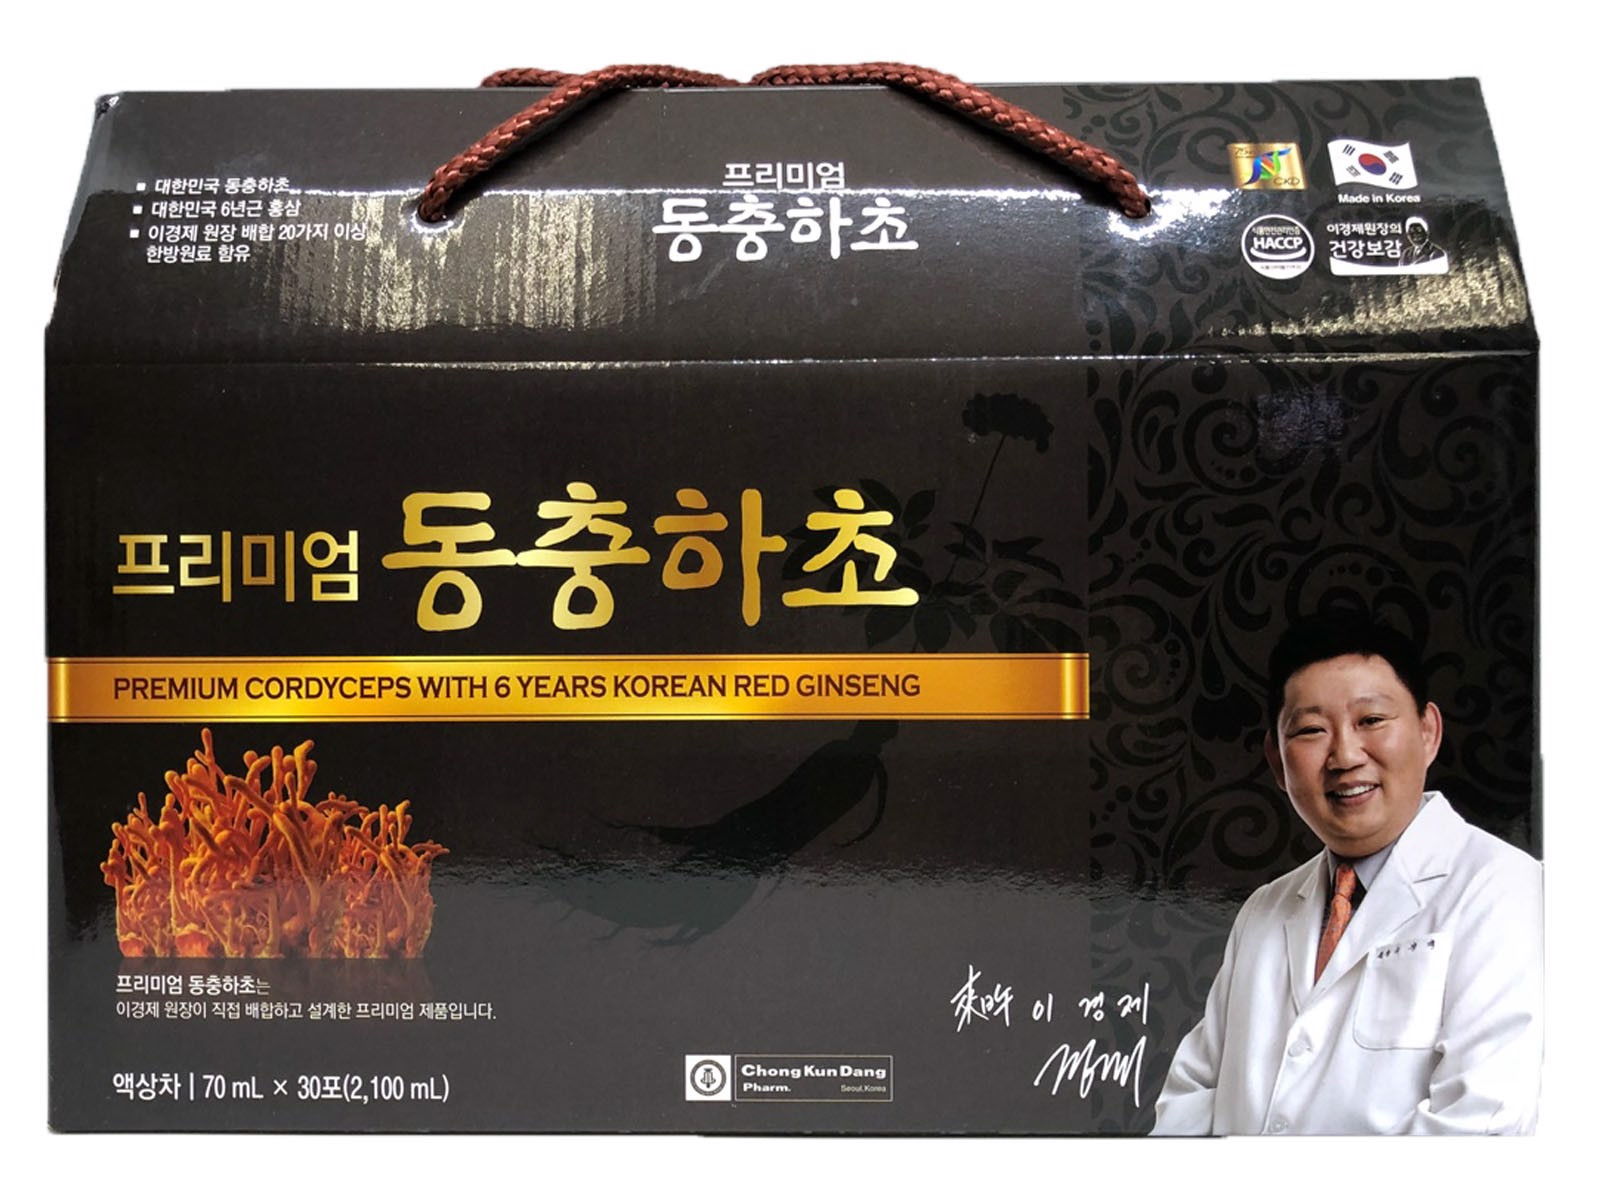 Premium Cordyceps With 6 Years Korean Red Ginseng